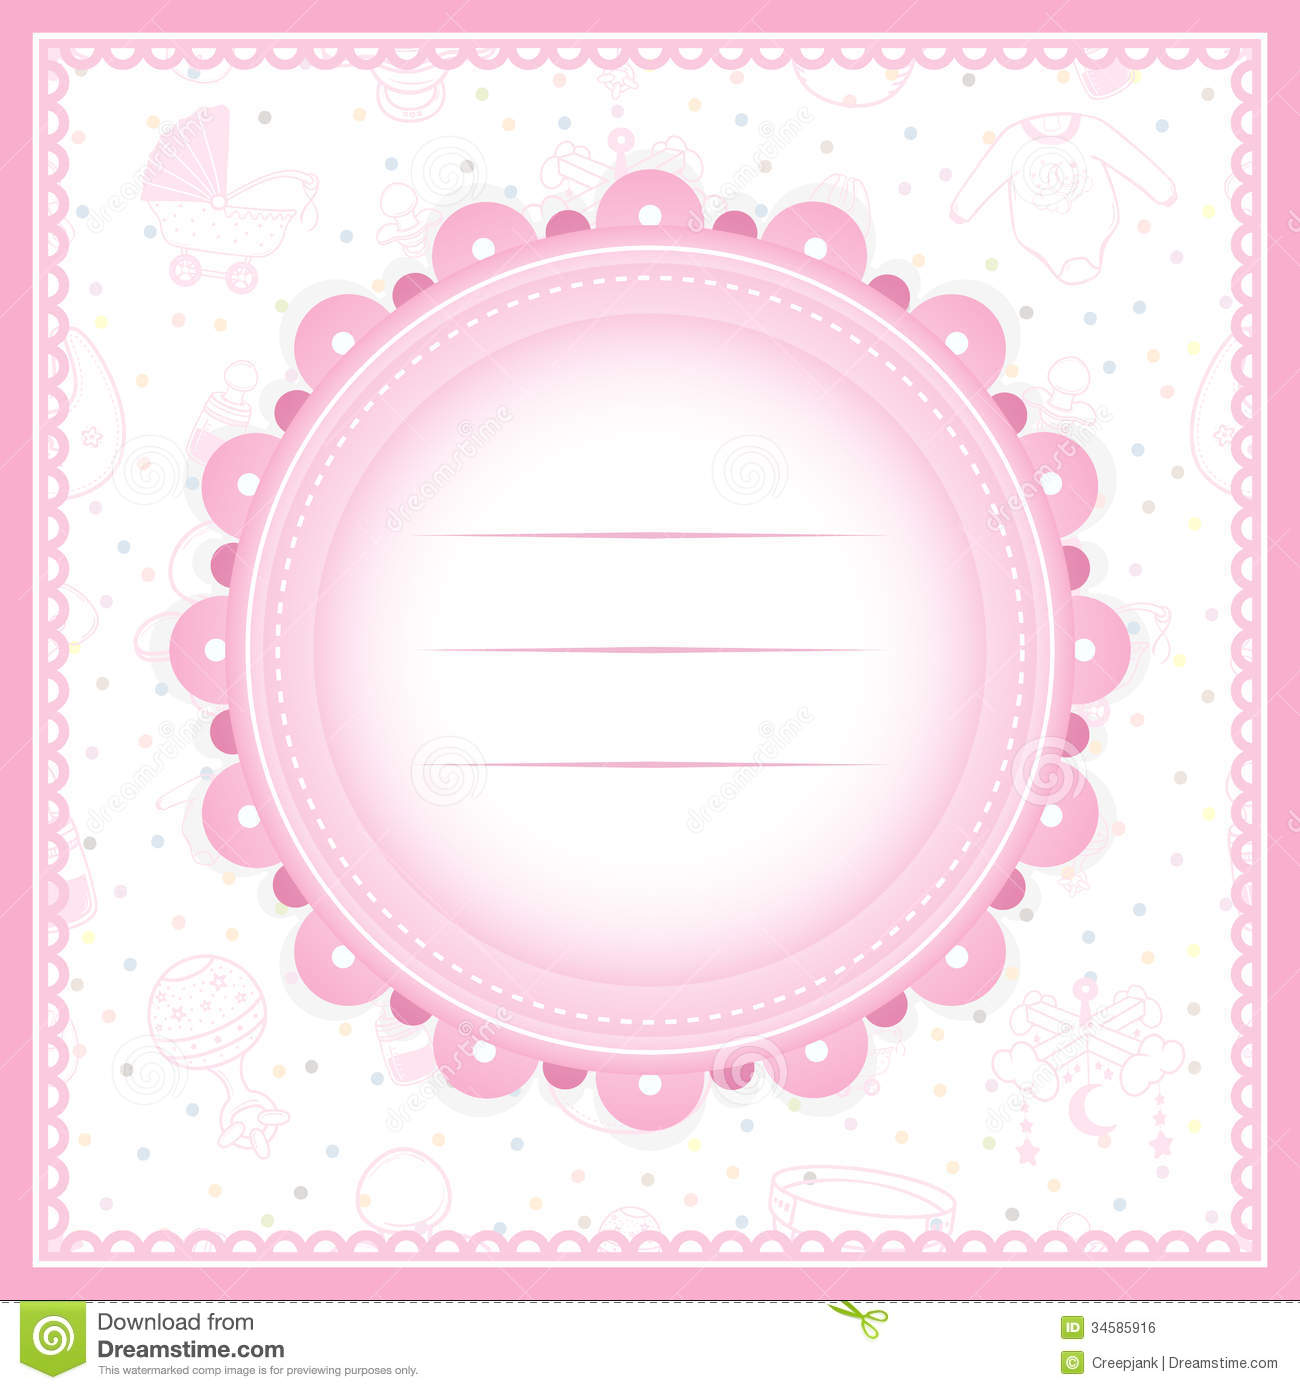 baby background card girl greeting shower